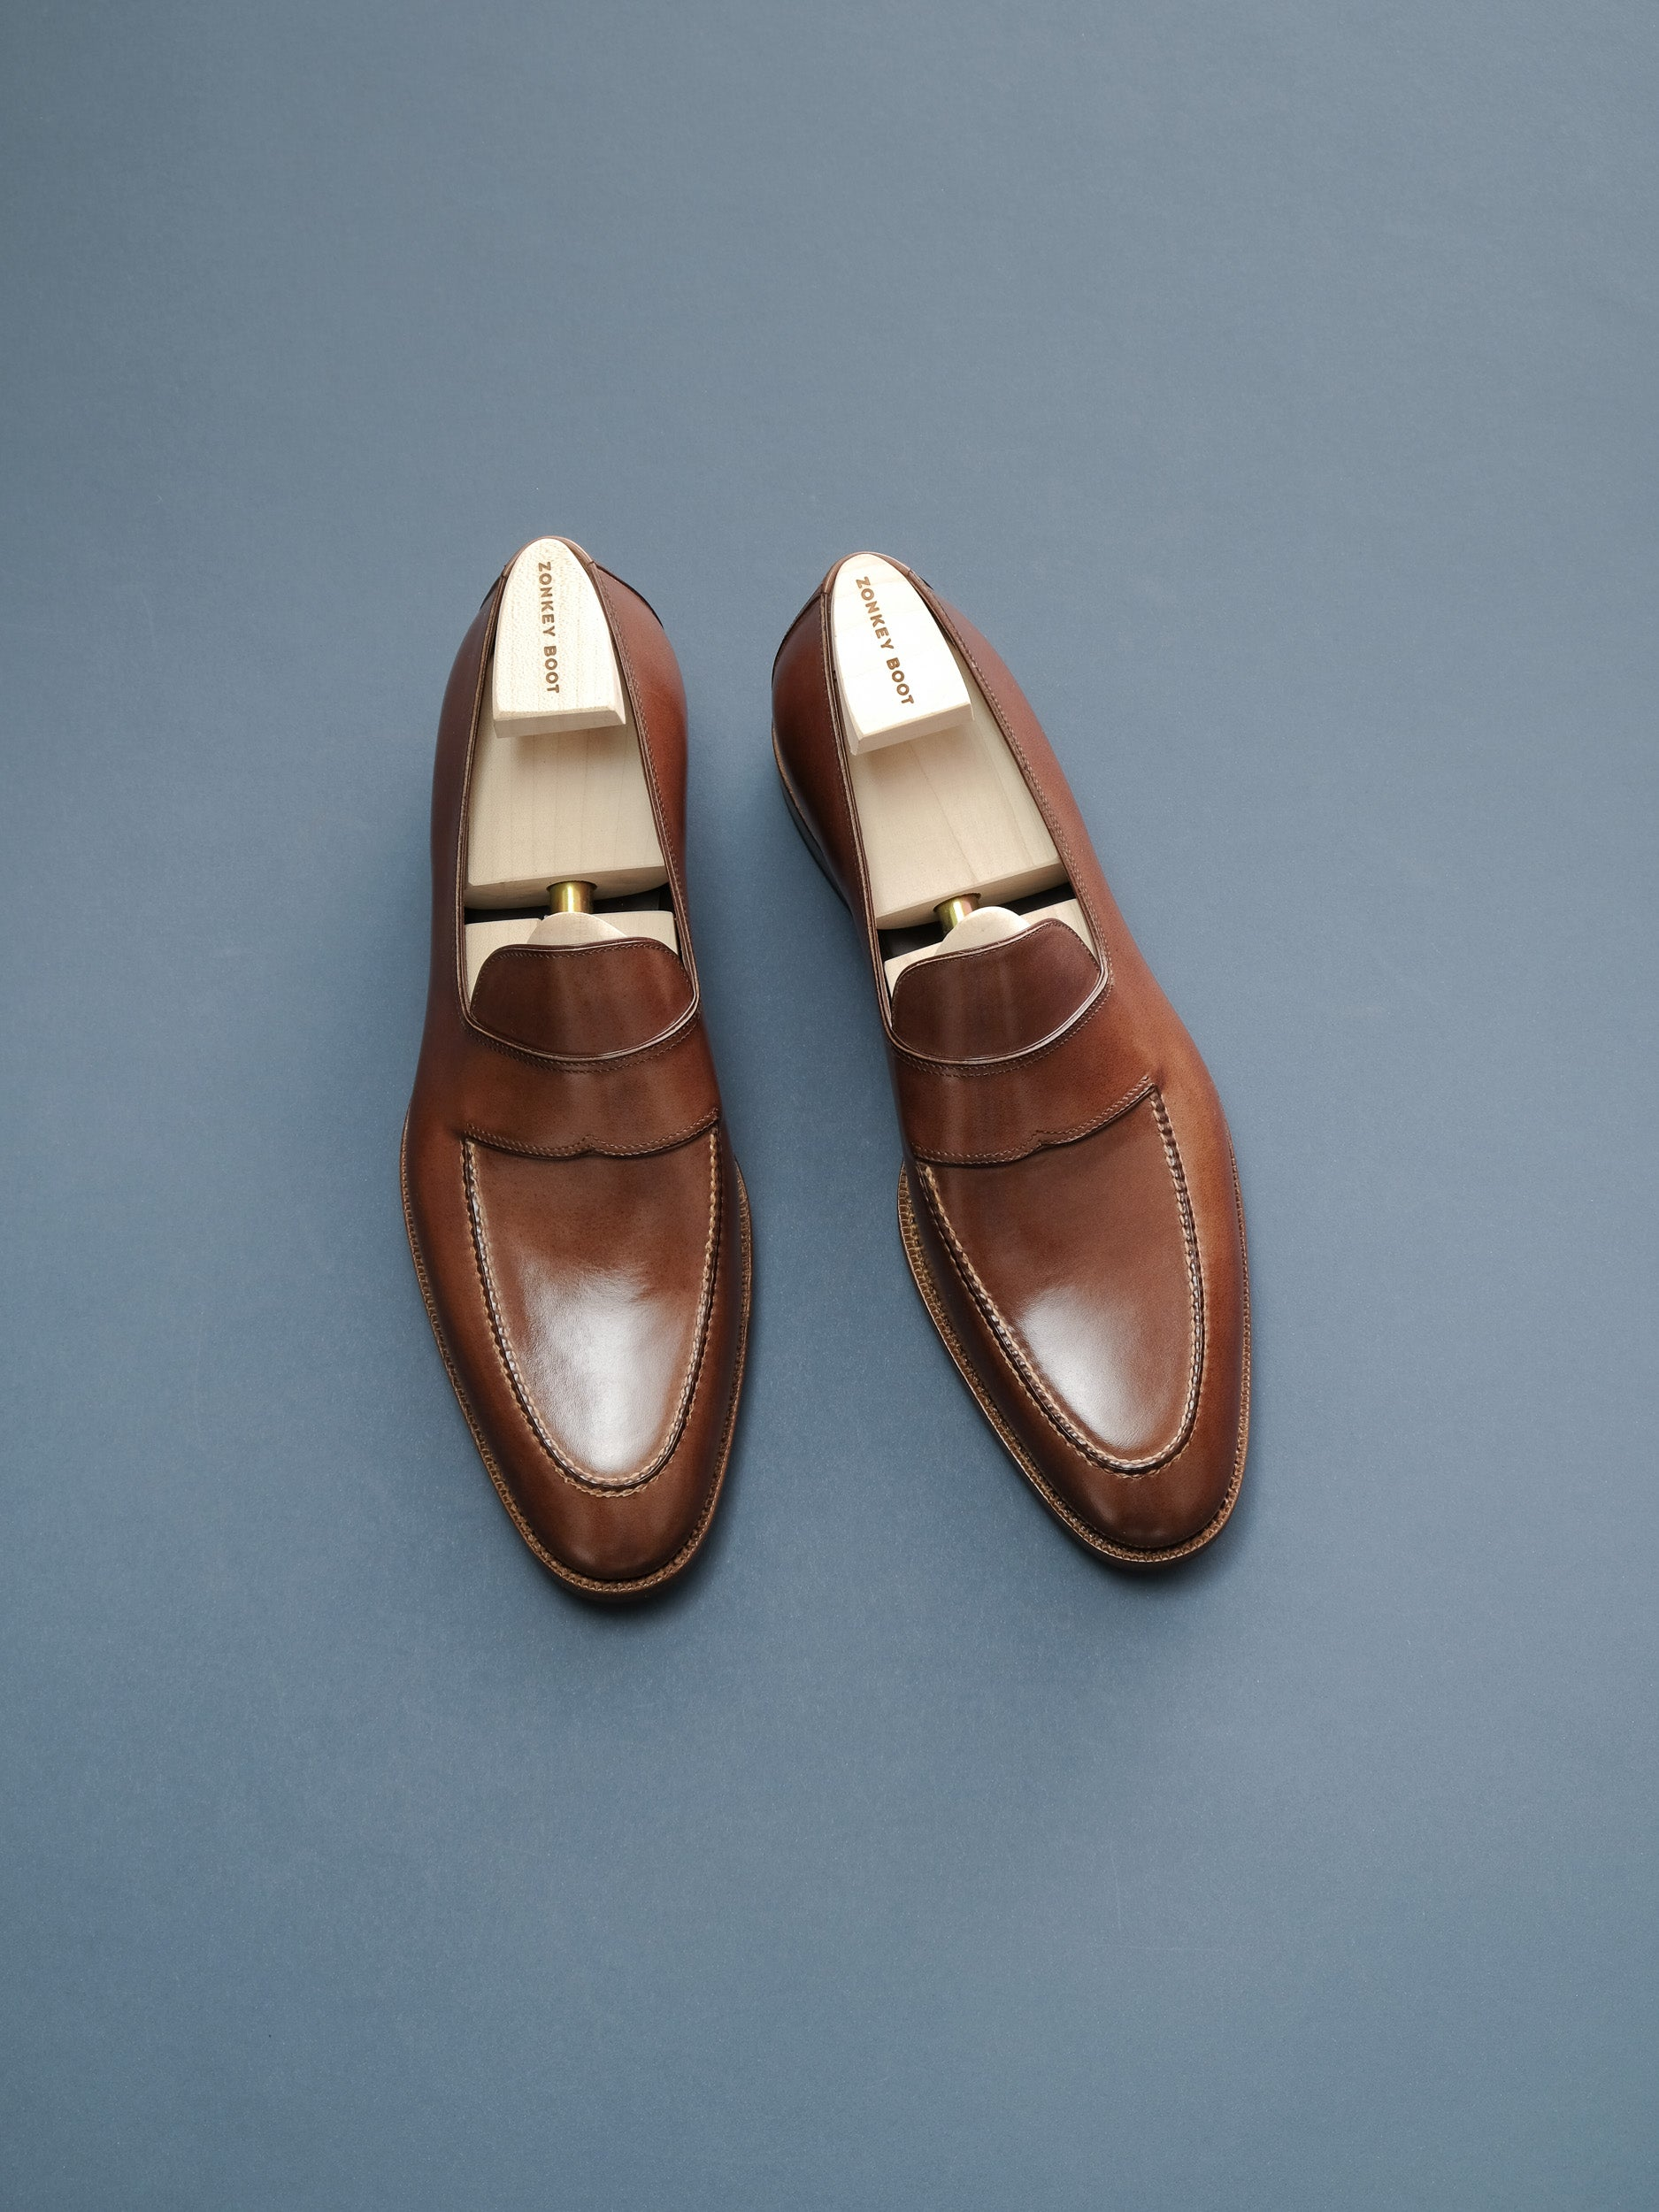 Zonkey Boot hand welted classic loafers with hand sewn aprons